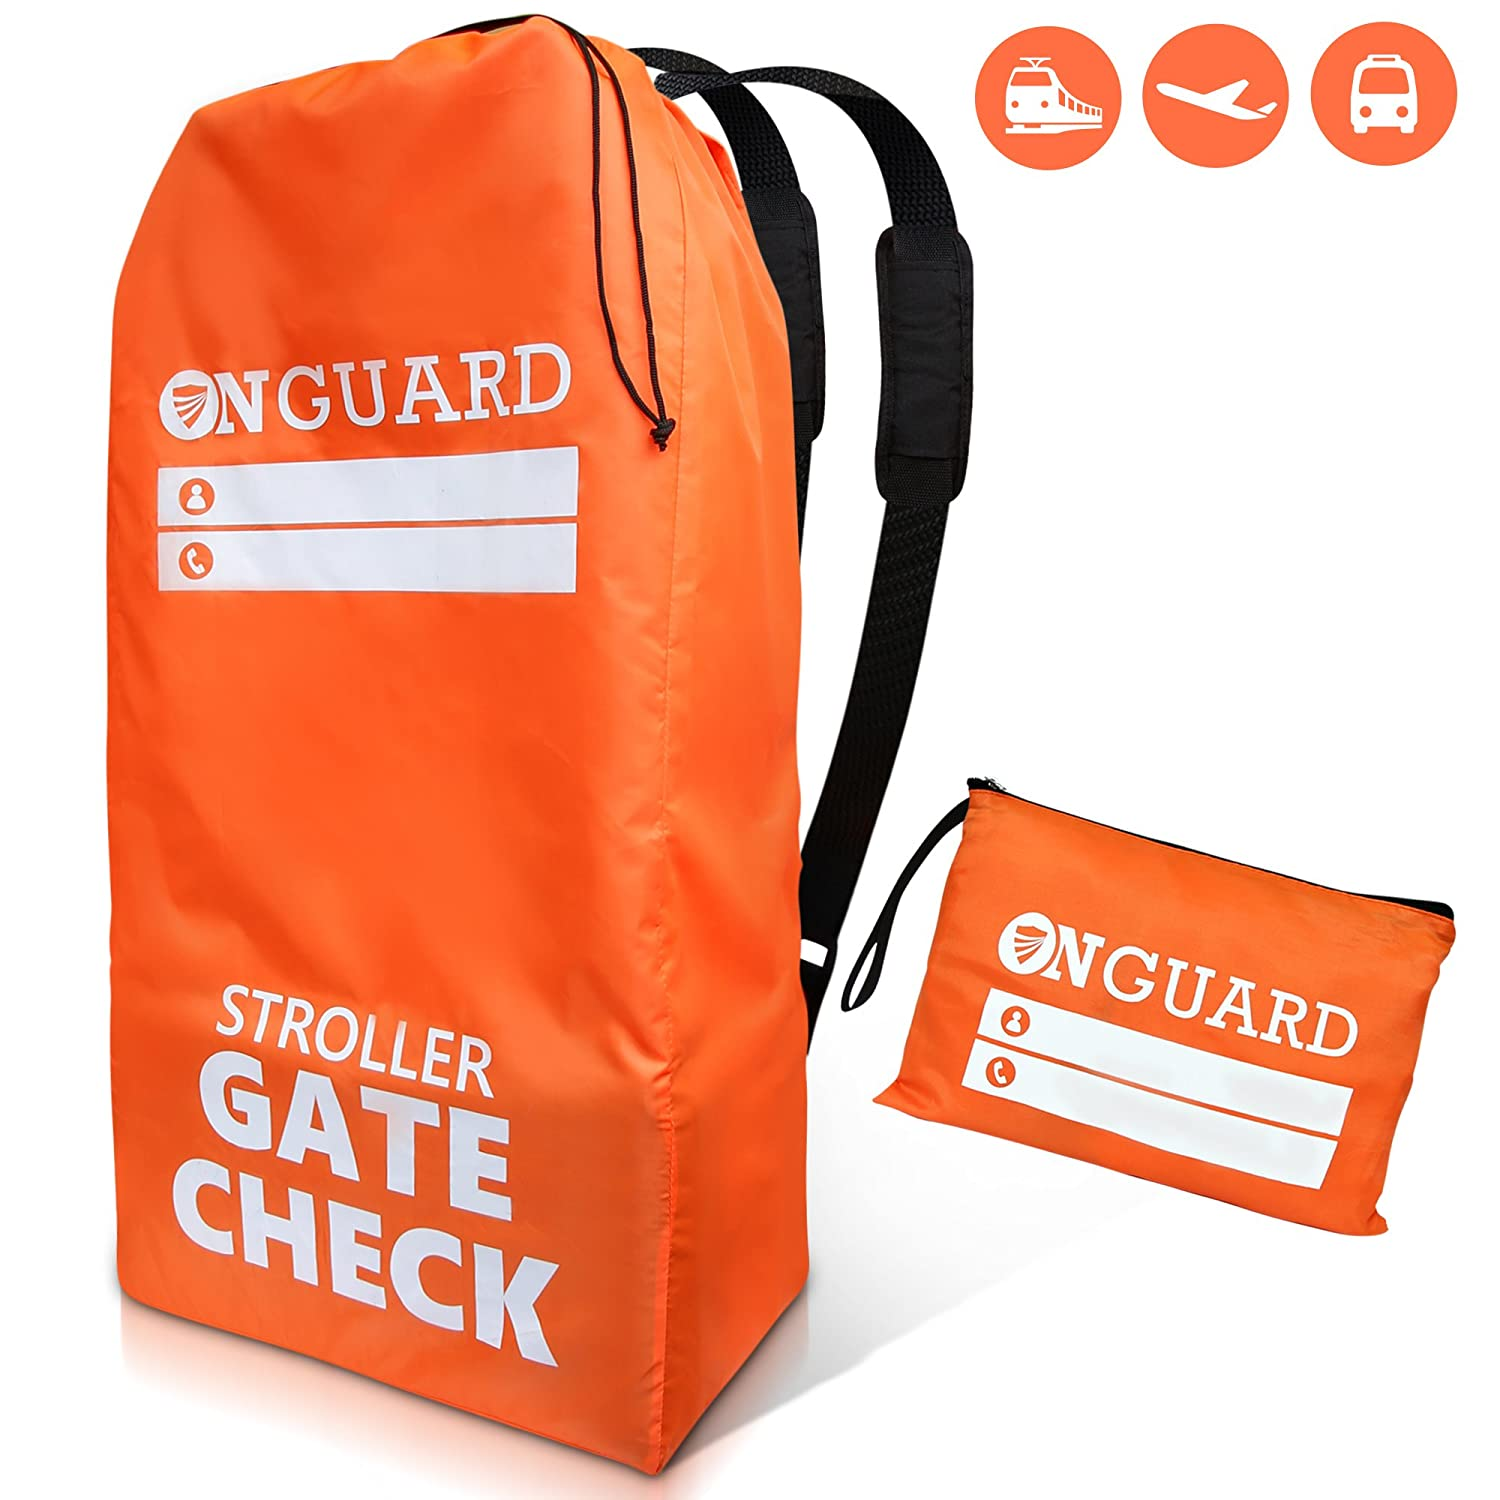 OnGuard - Double Stroller Bag with Storage Pouch | Stroller Travel Bag | Waterproof Rip-Resistant Polyester | Compact Foldable Gate Check Cover for Strollers | Universal Baby Stroller Bag for Airplane